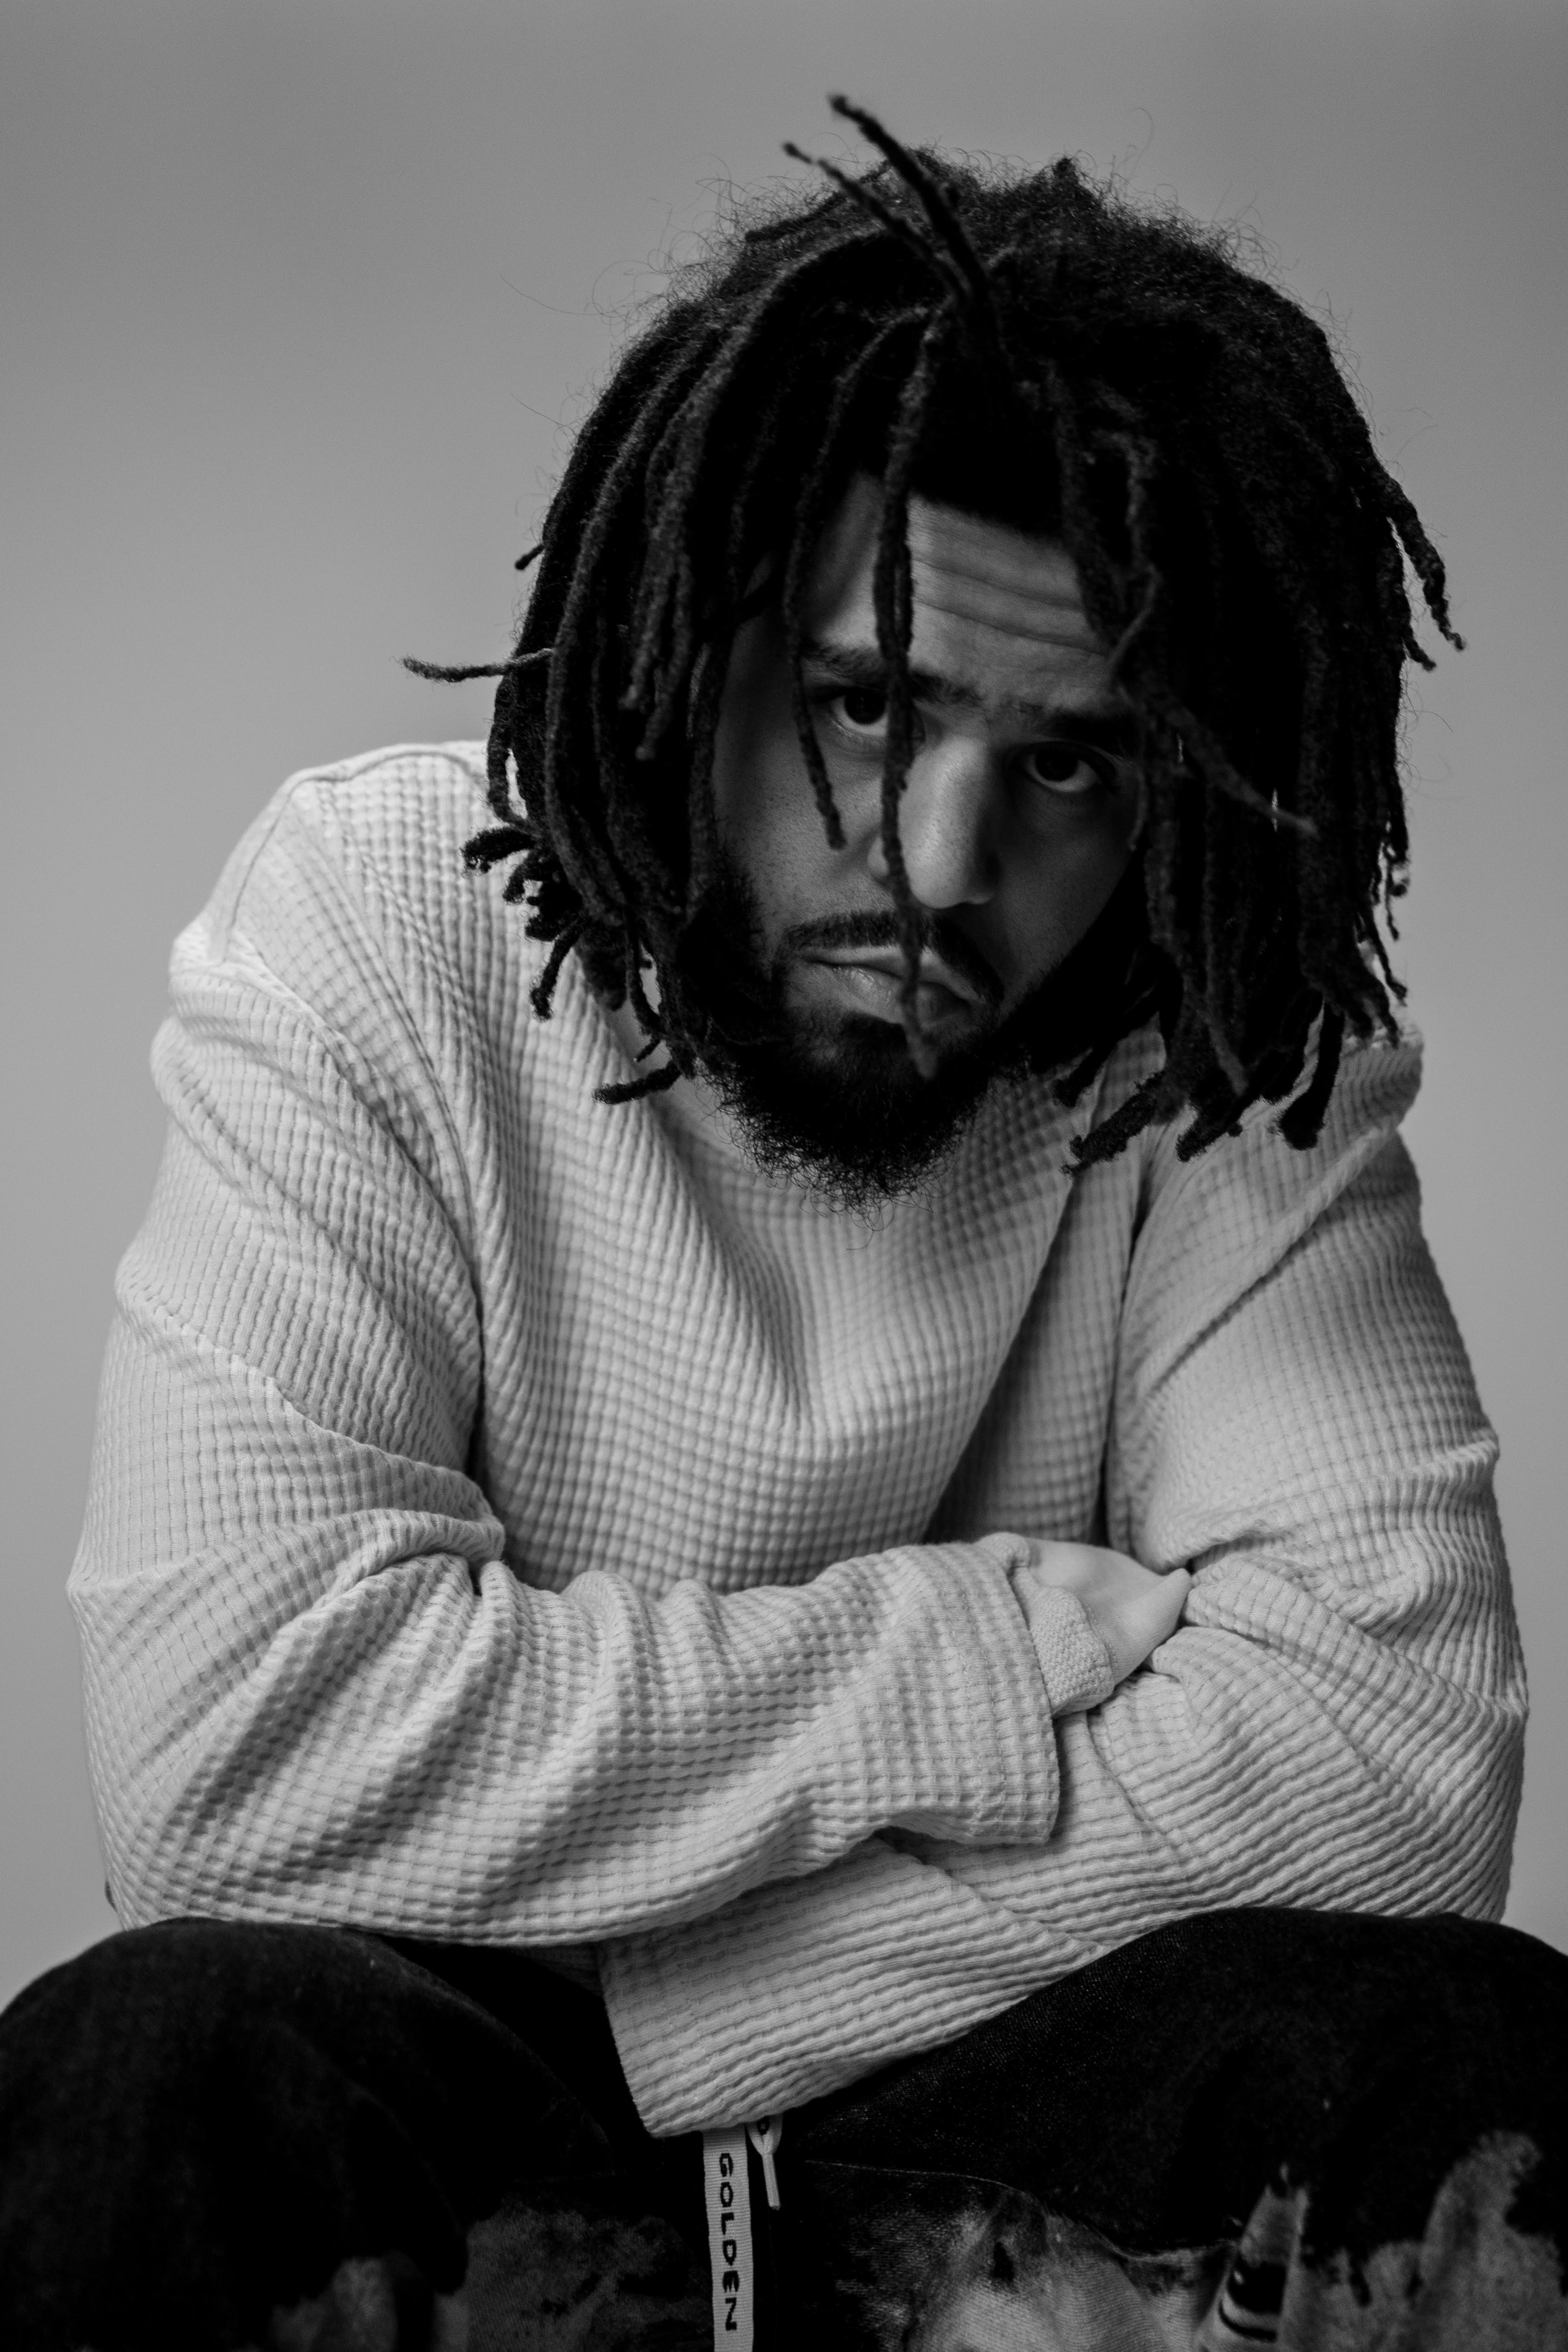 J cole announces dreamville festival lineup feat sza big sean 21 savage nelly teyana taylor more